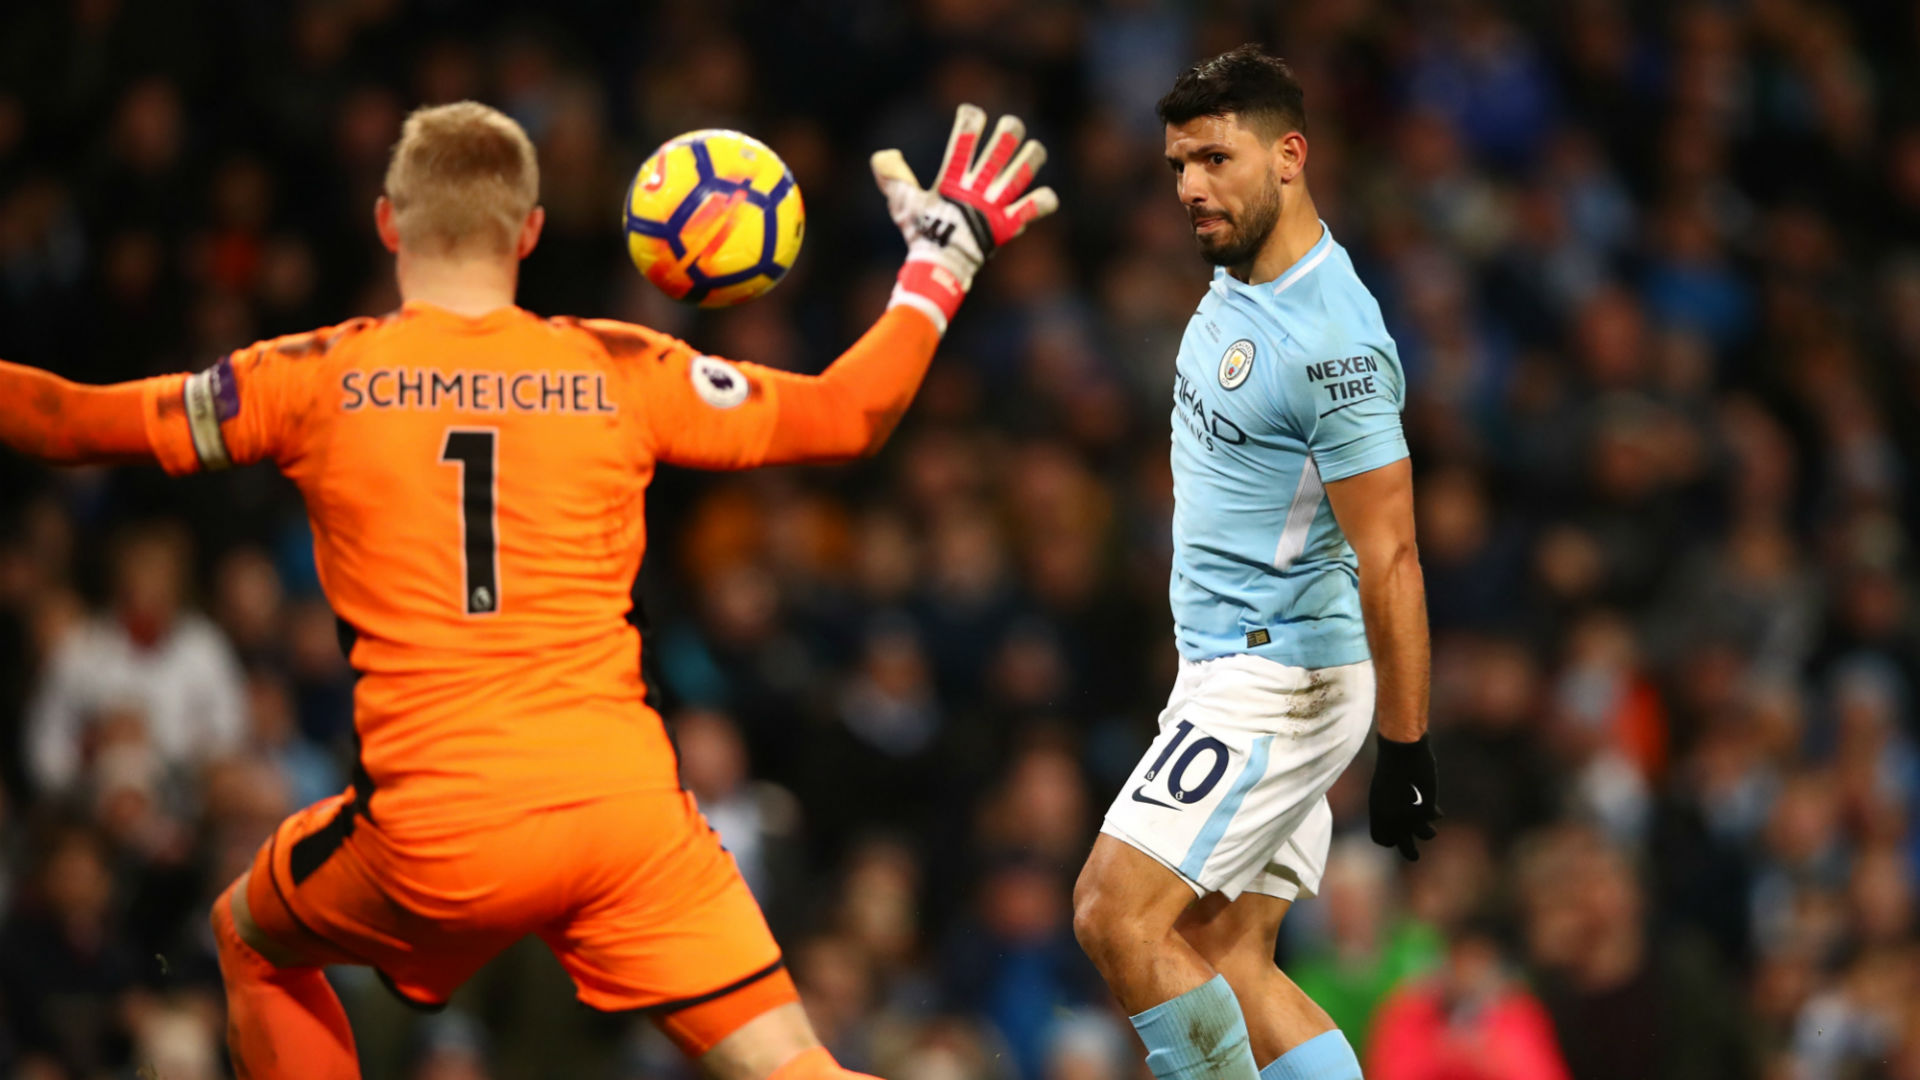 Riyad Mahrez will not face Man City, confirms Leicester boss Claude Puel